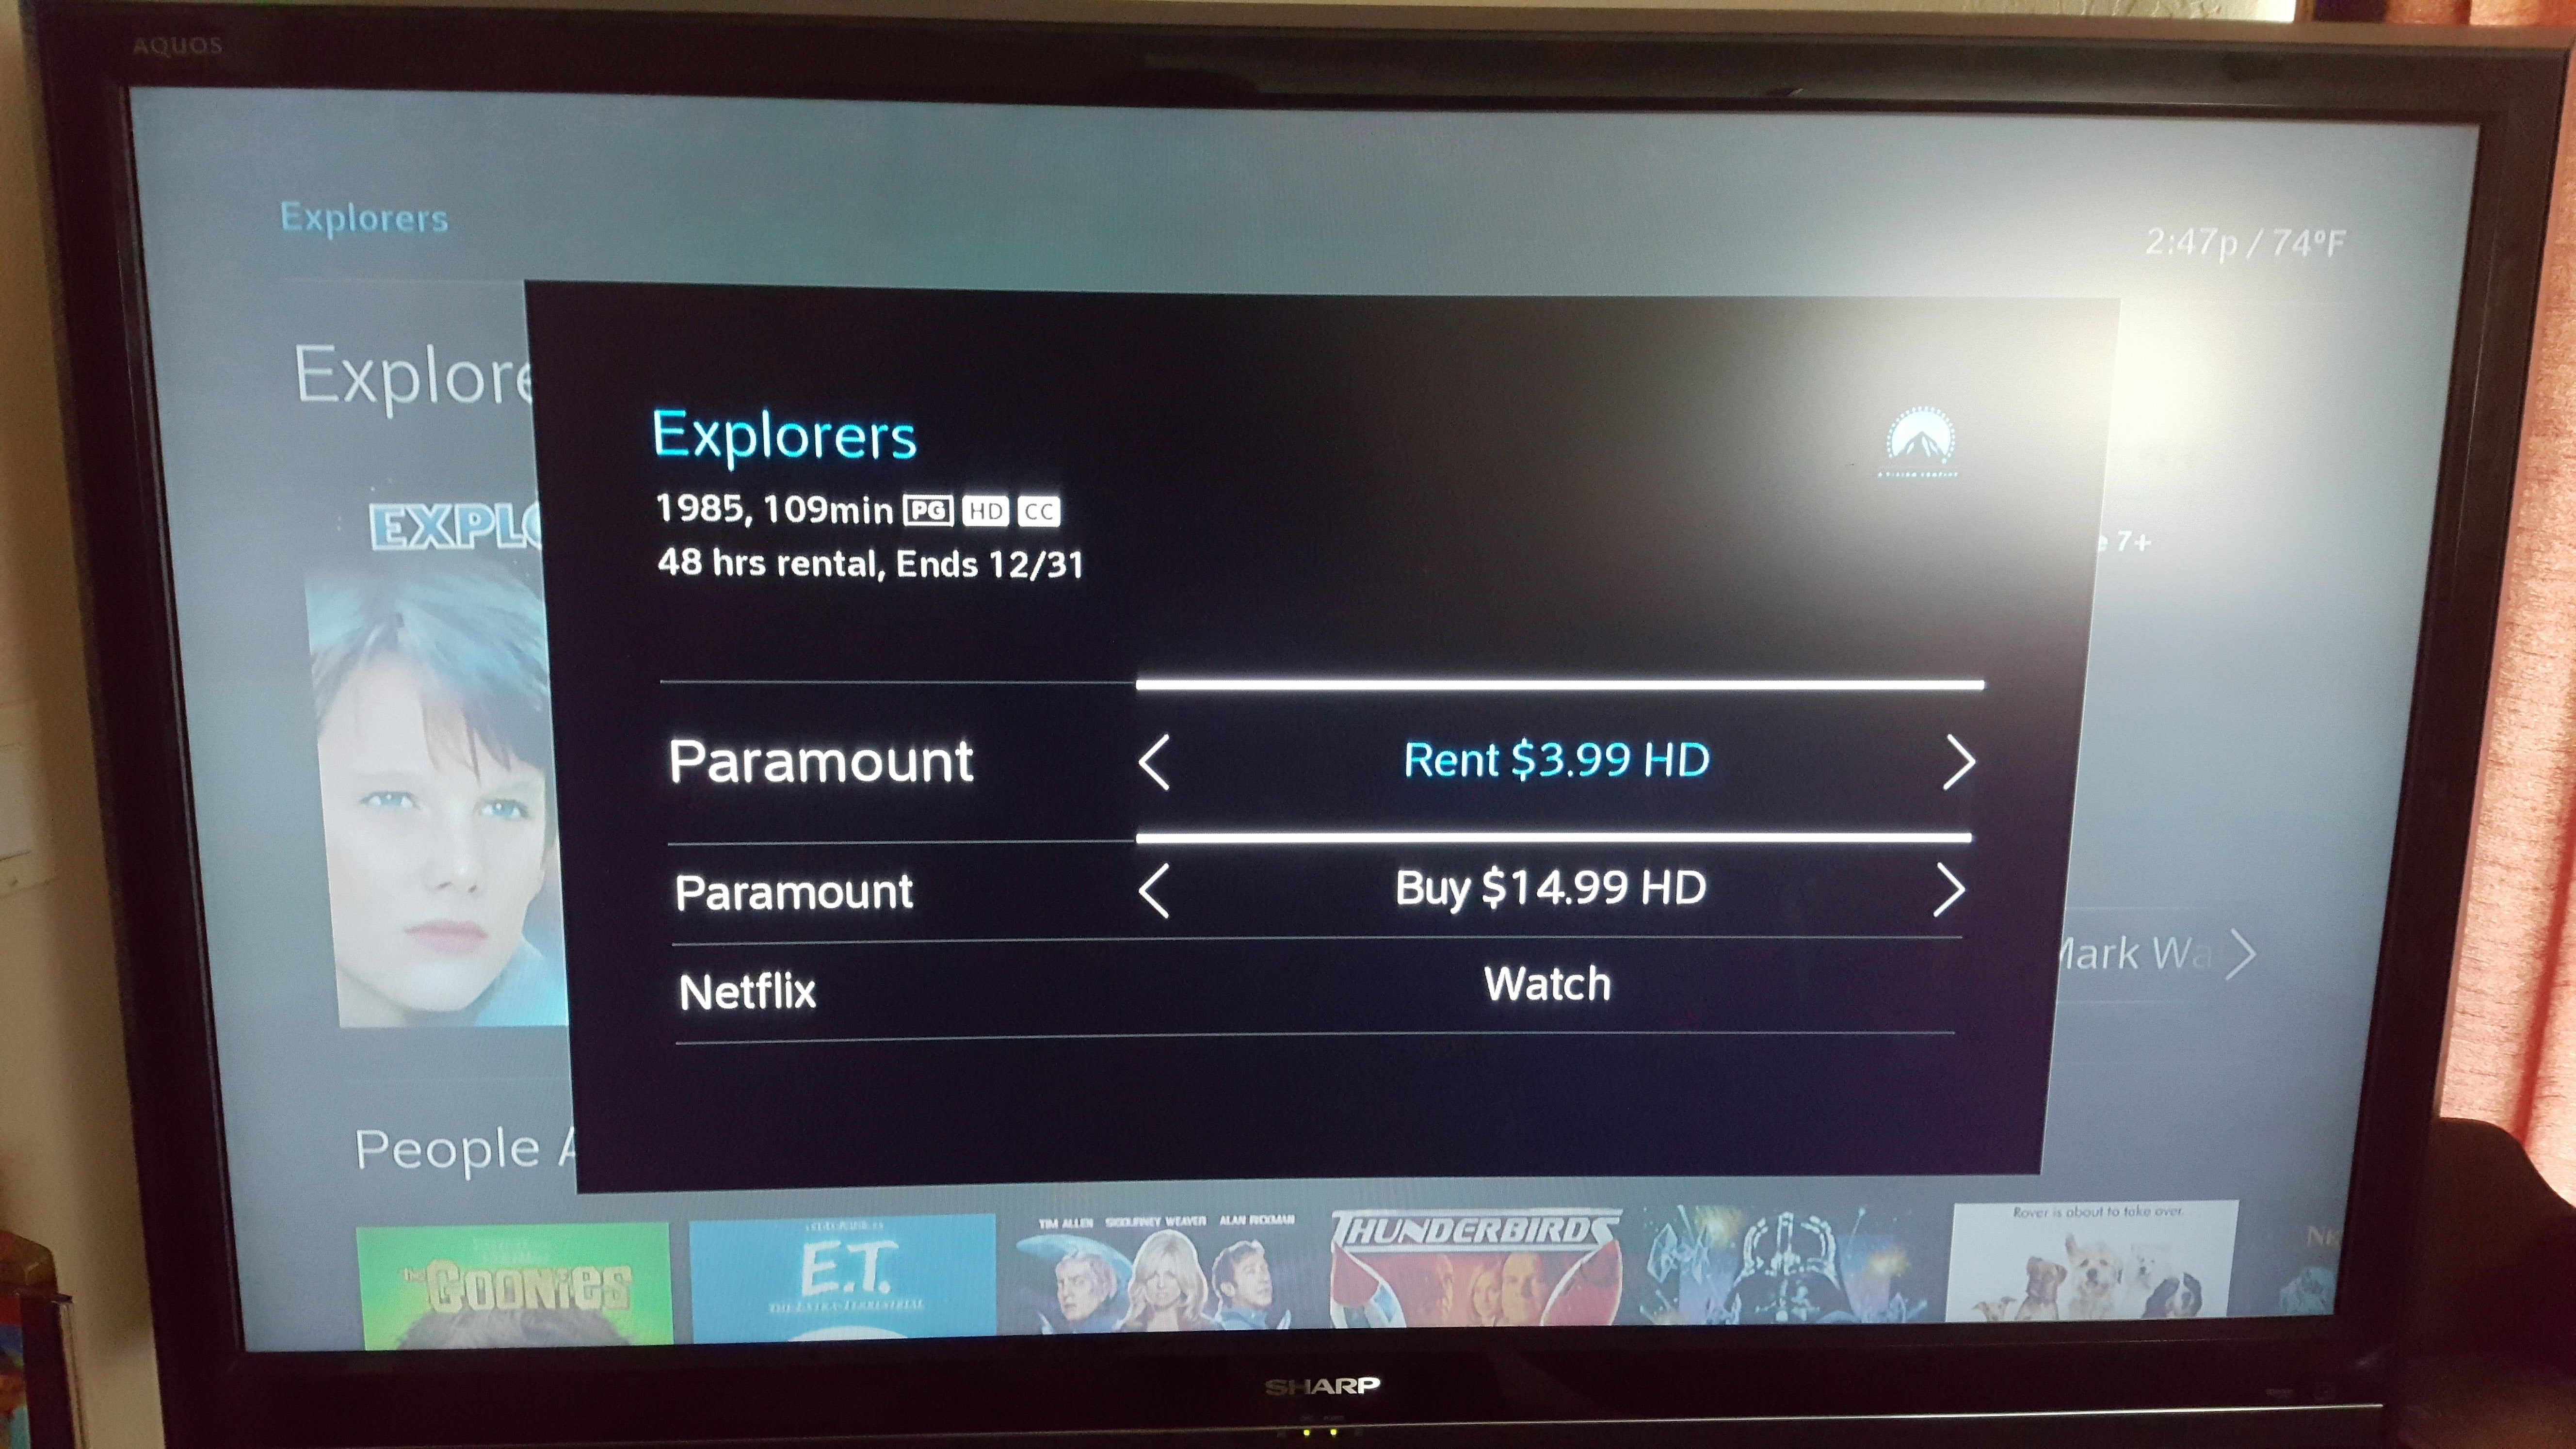 Hands on: Netflix on Comcast's X1 set-top box is a good experience